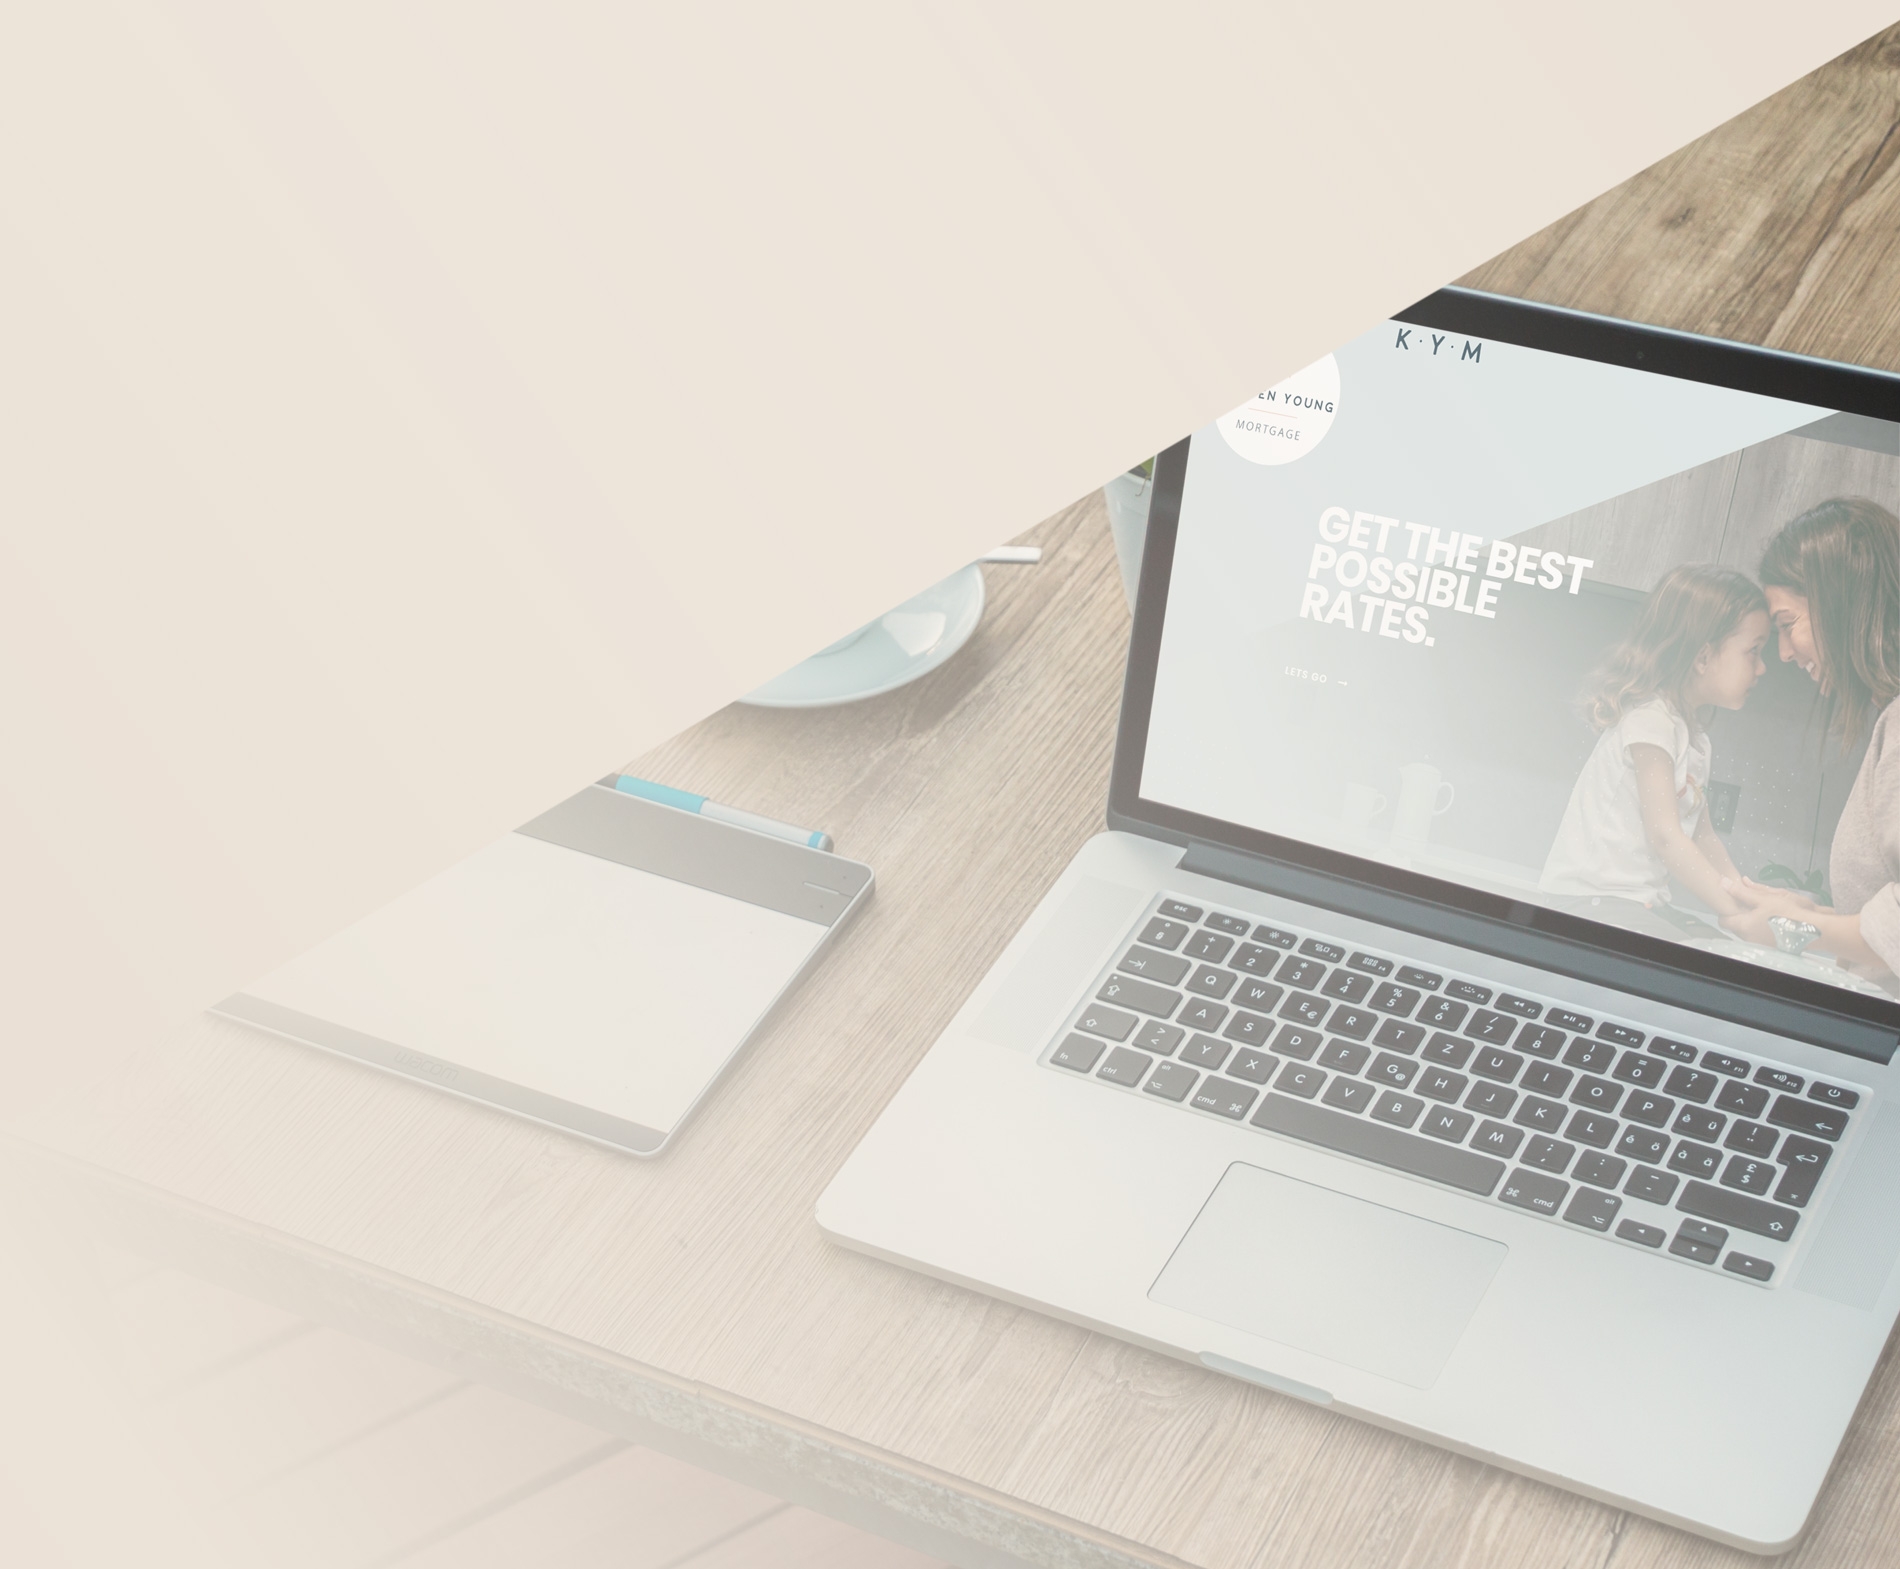 Contact Image Slider 3